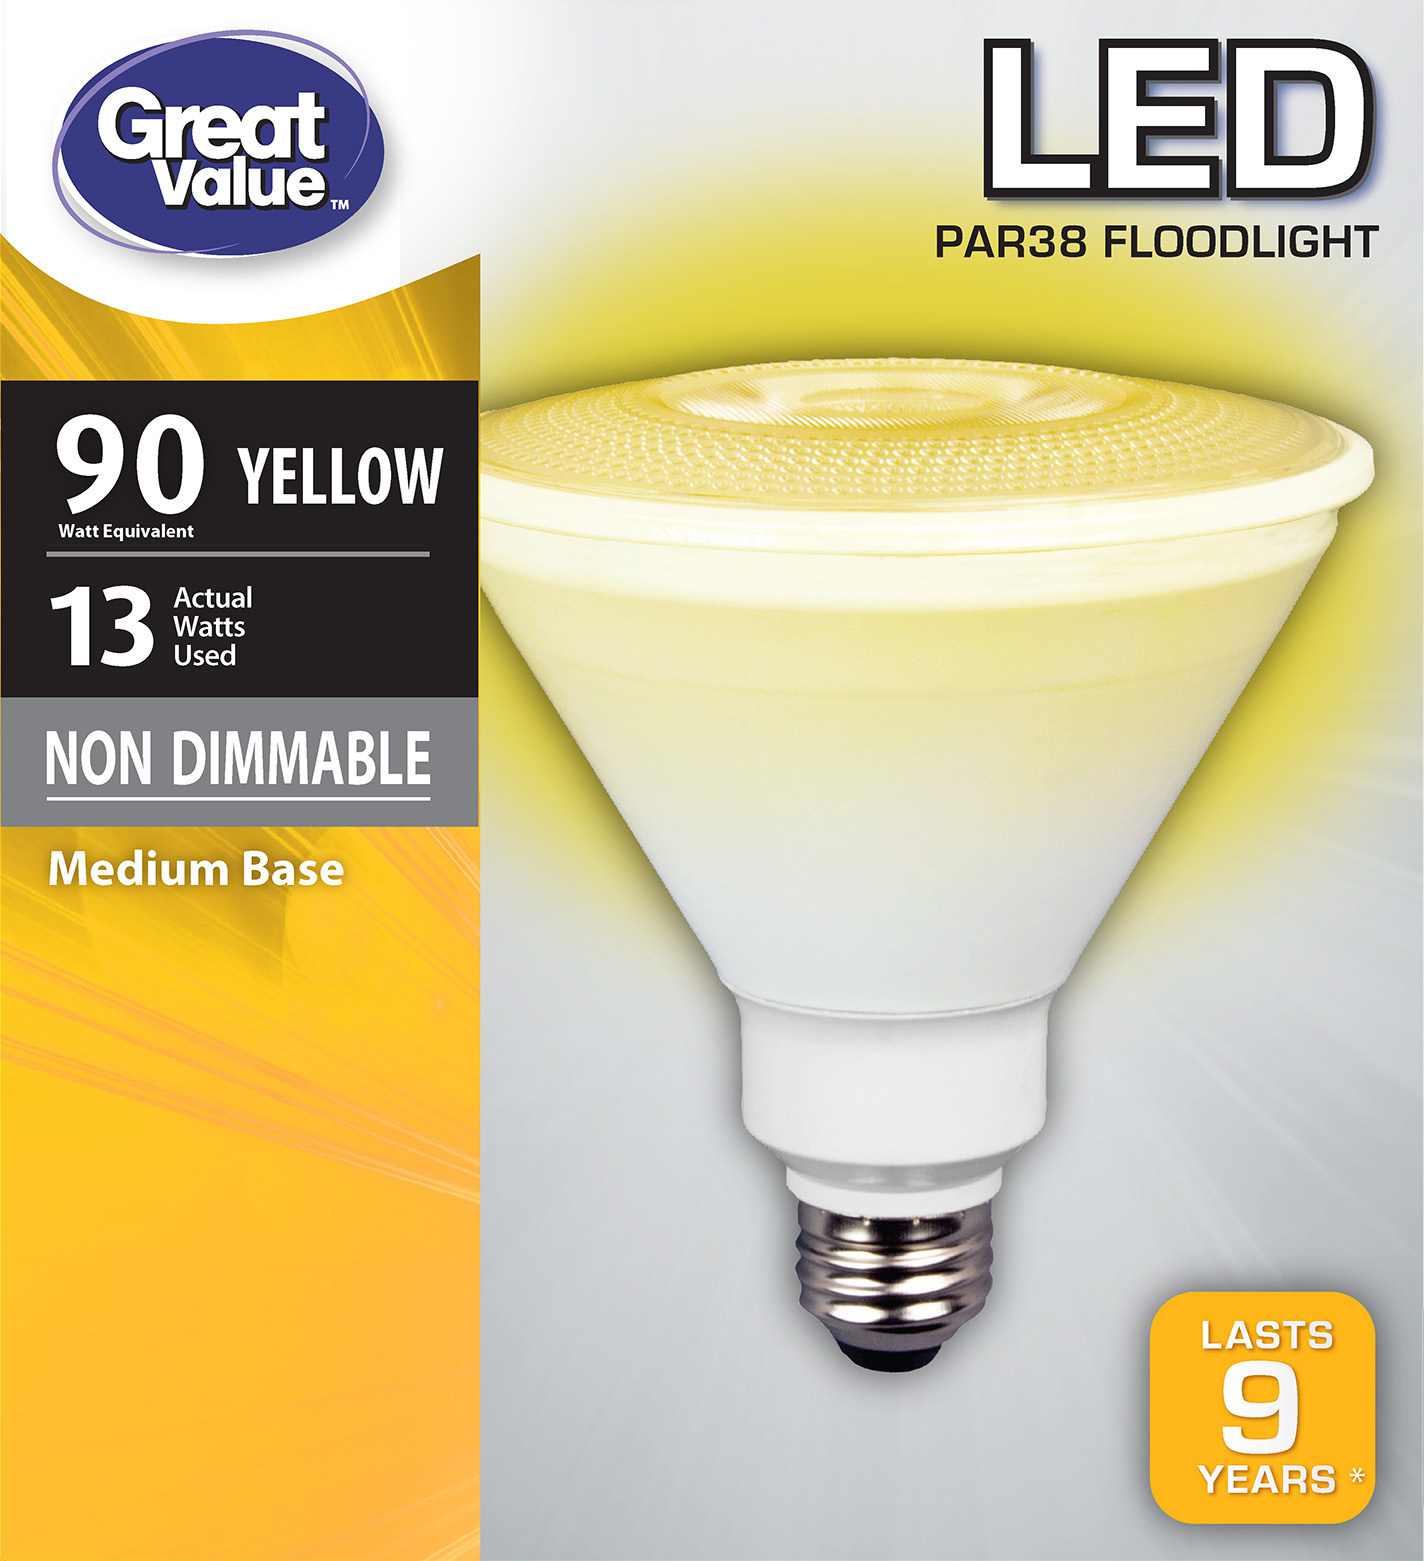 Great Value LED P38 Floodlight Light Bulb, 13W (90W Equivalent), Yellow